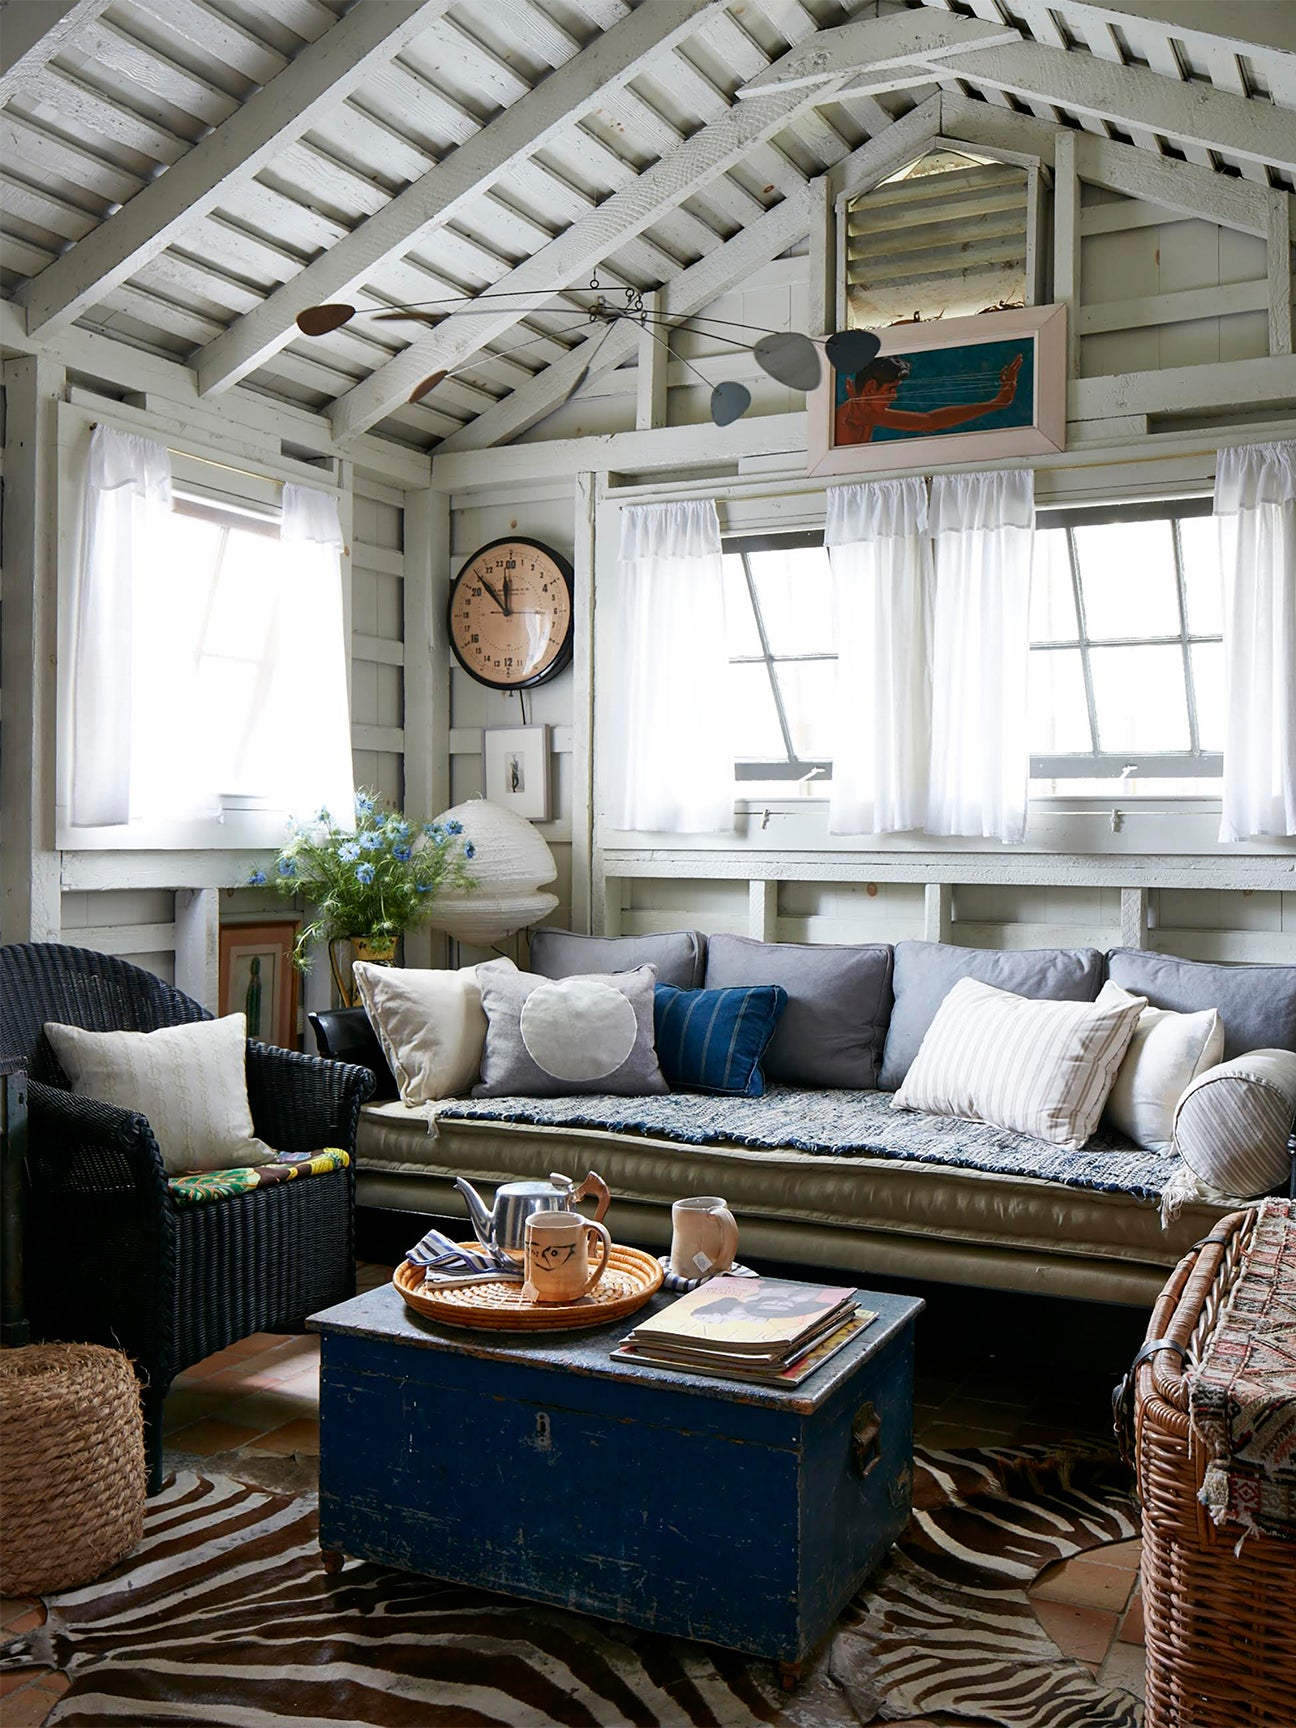 Small living room with pitched roof and multiple pillows